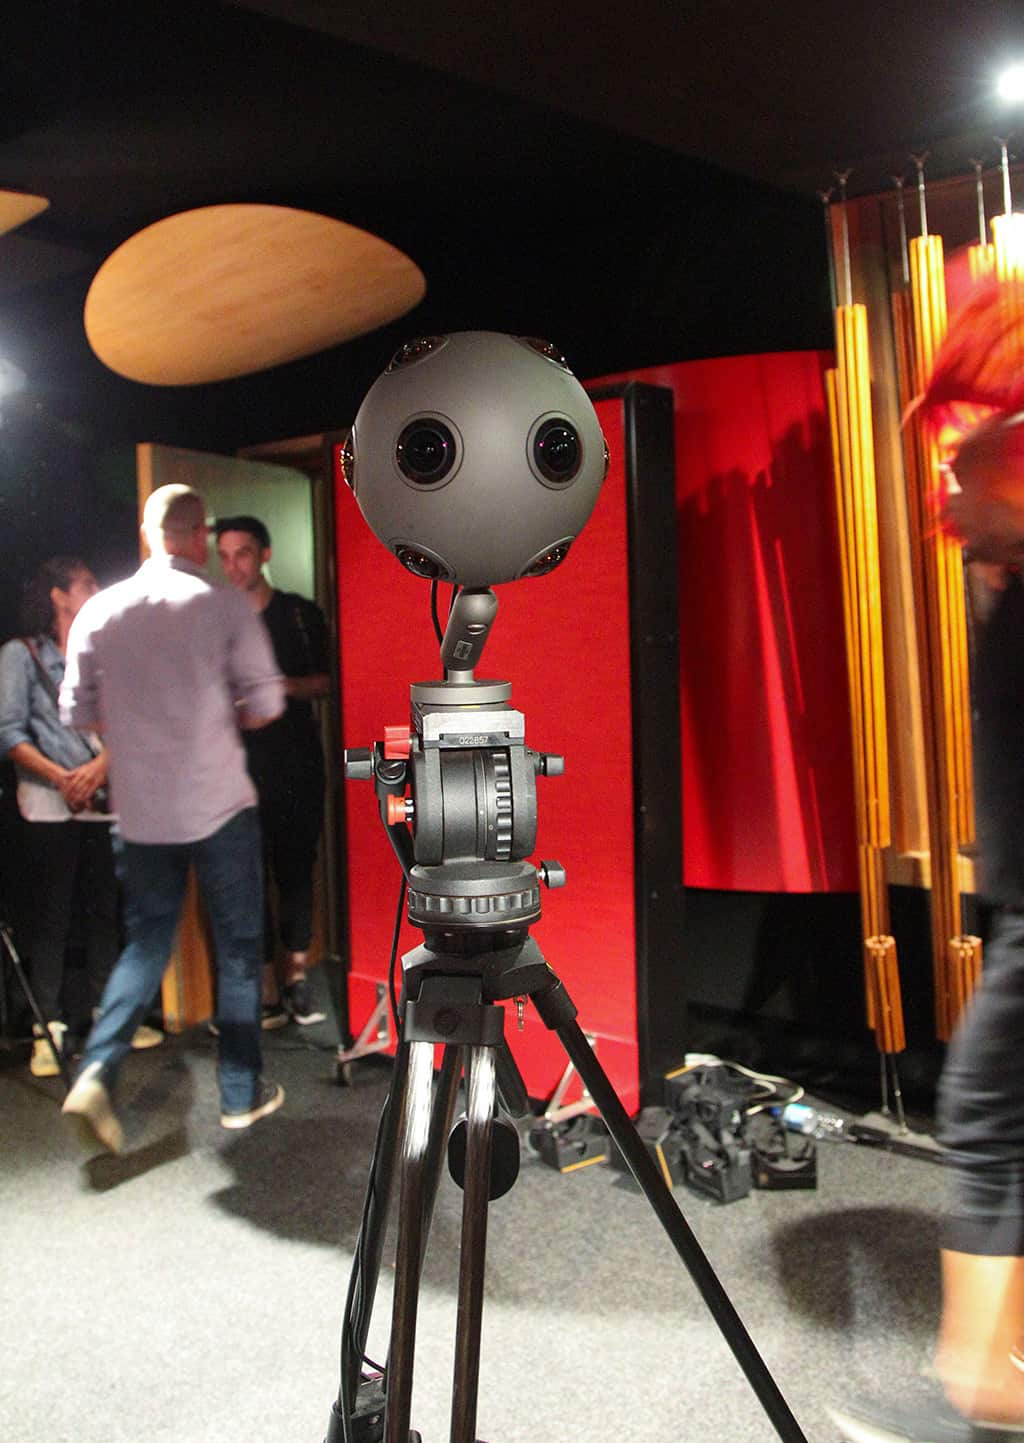 NITV Change the Date VR Project Behind the Scenes with the Nokia Ozo